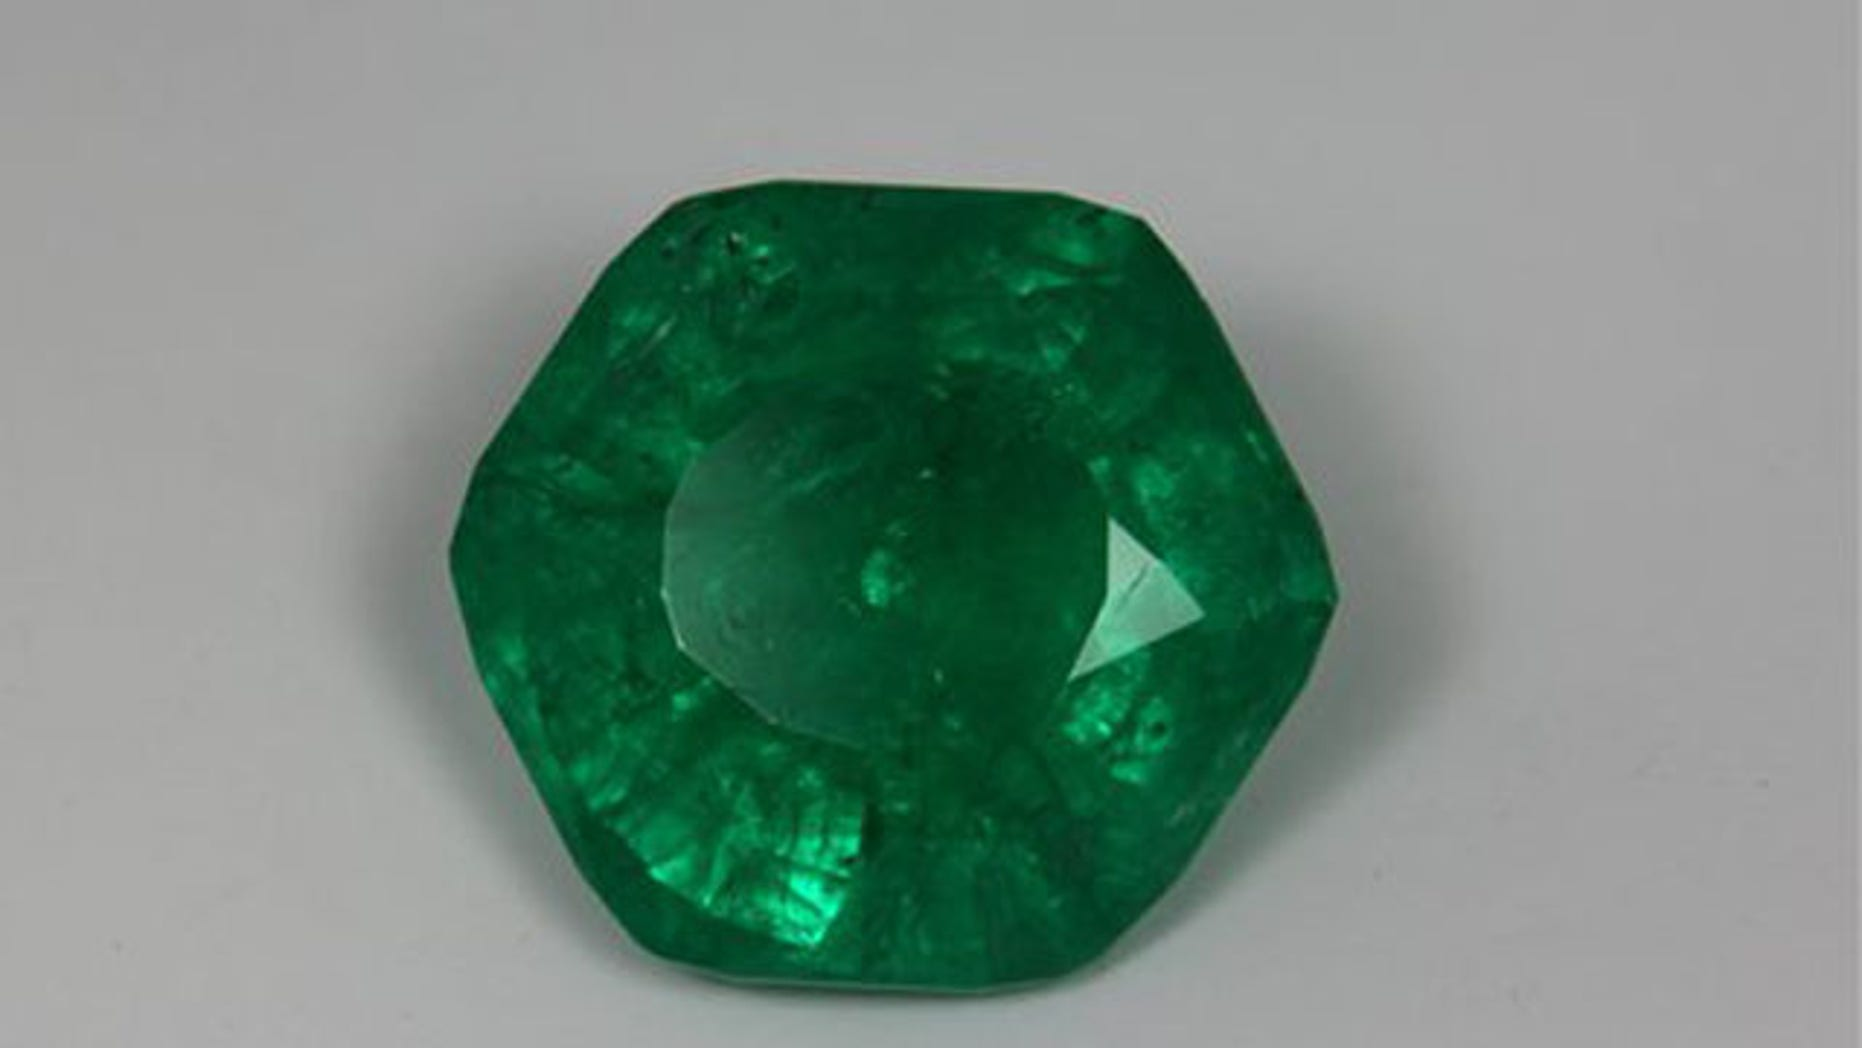 This undated shows the Carolina Emperor emerald after its final cut. Gem experts say the 65-carat emerald yielded at a North Carolina farm may be the biggest ever uncovered in North America (AP).